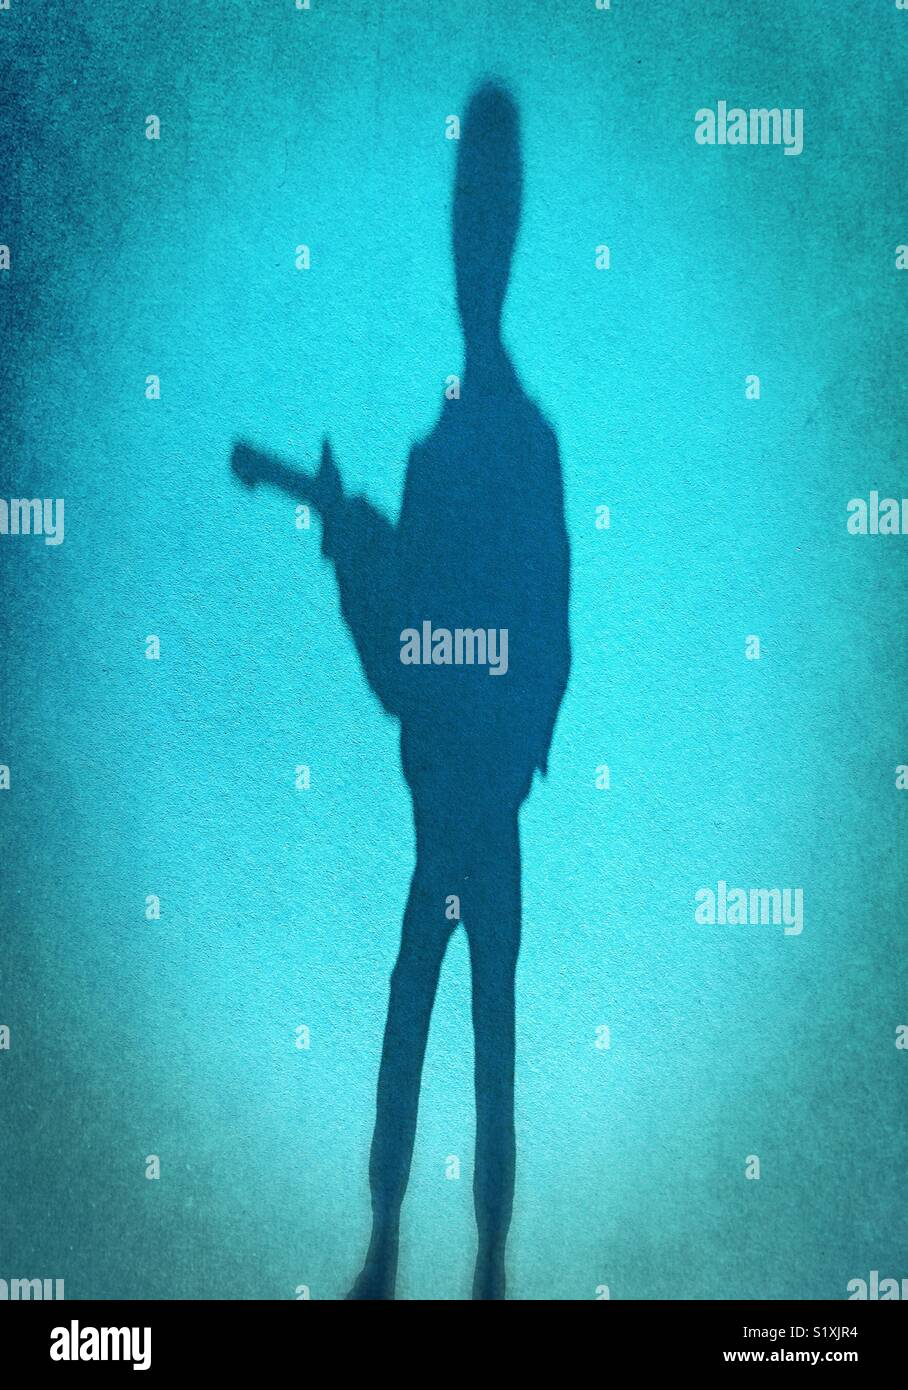 Silhouette figure of person with gun. - Stock Image